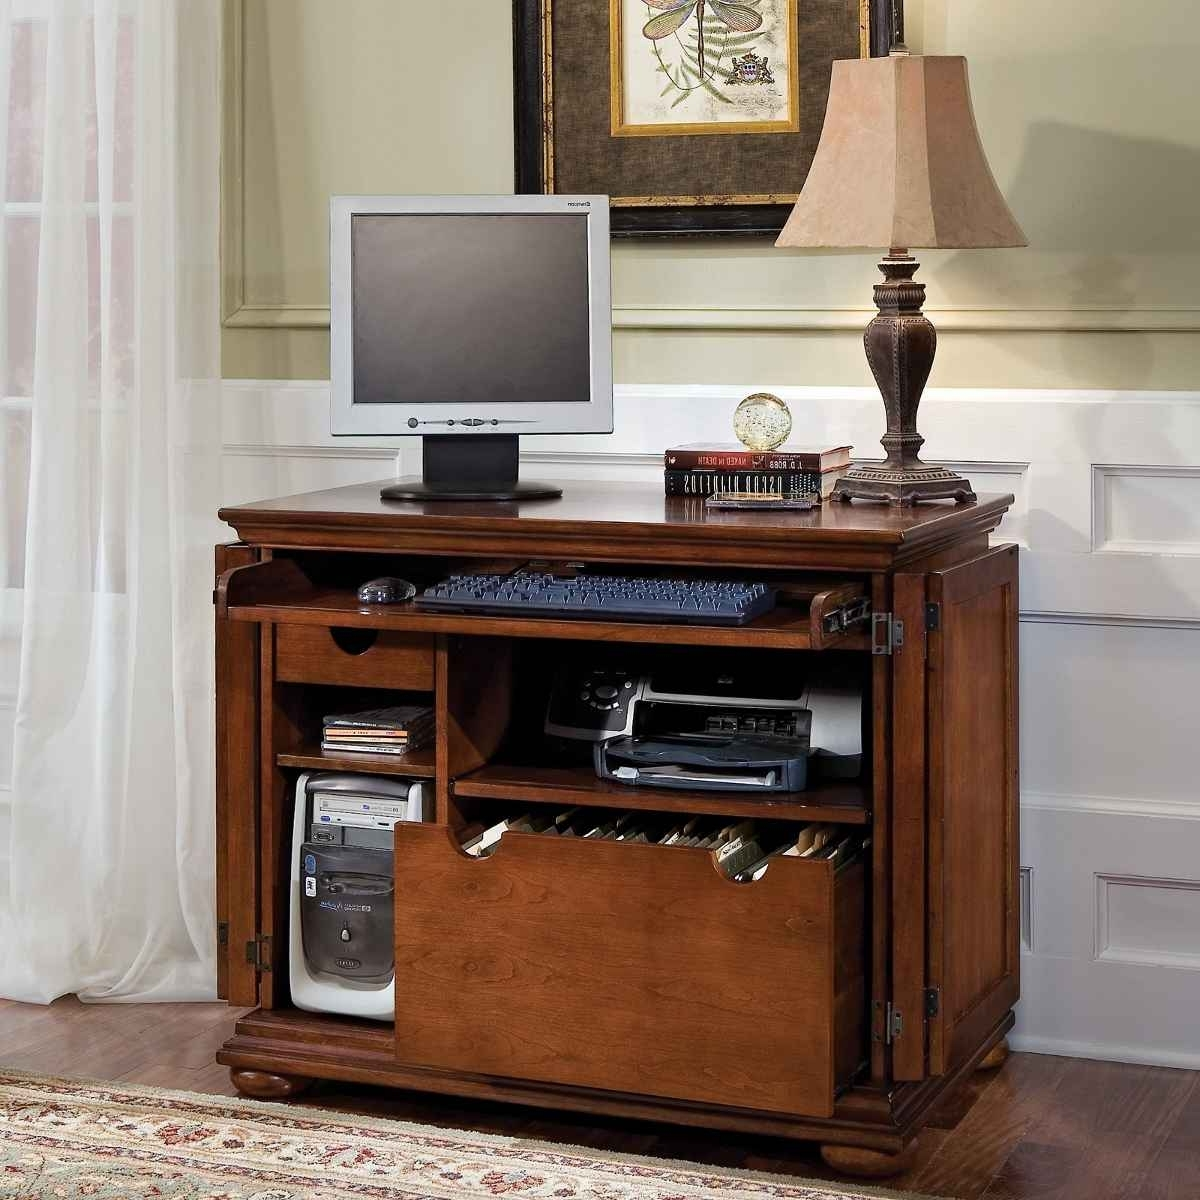 Computer Desks For Small Areas Intended For Favorite Computer Desk For Small Spaces – Decofurnish (View 4 of 20)